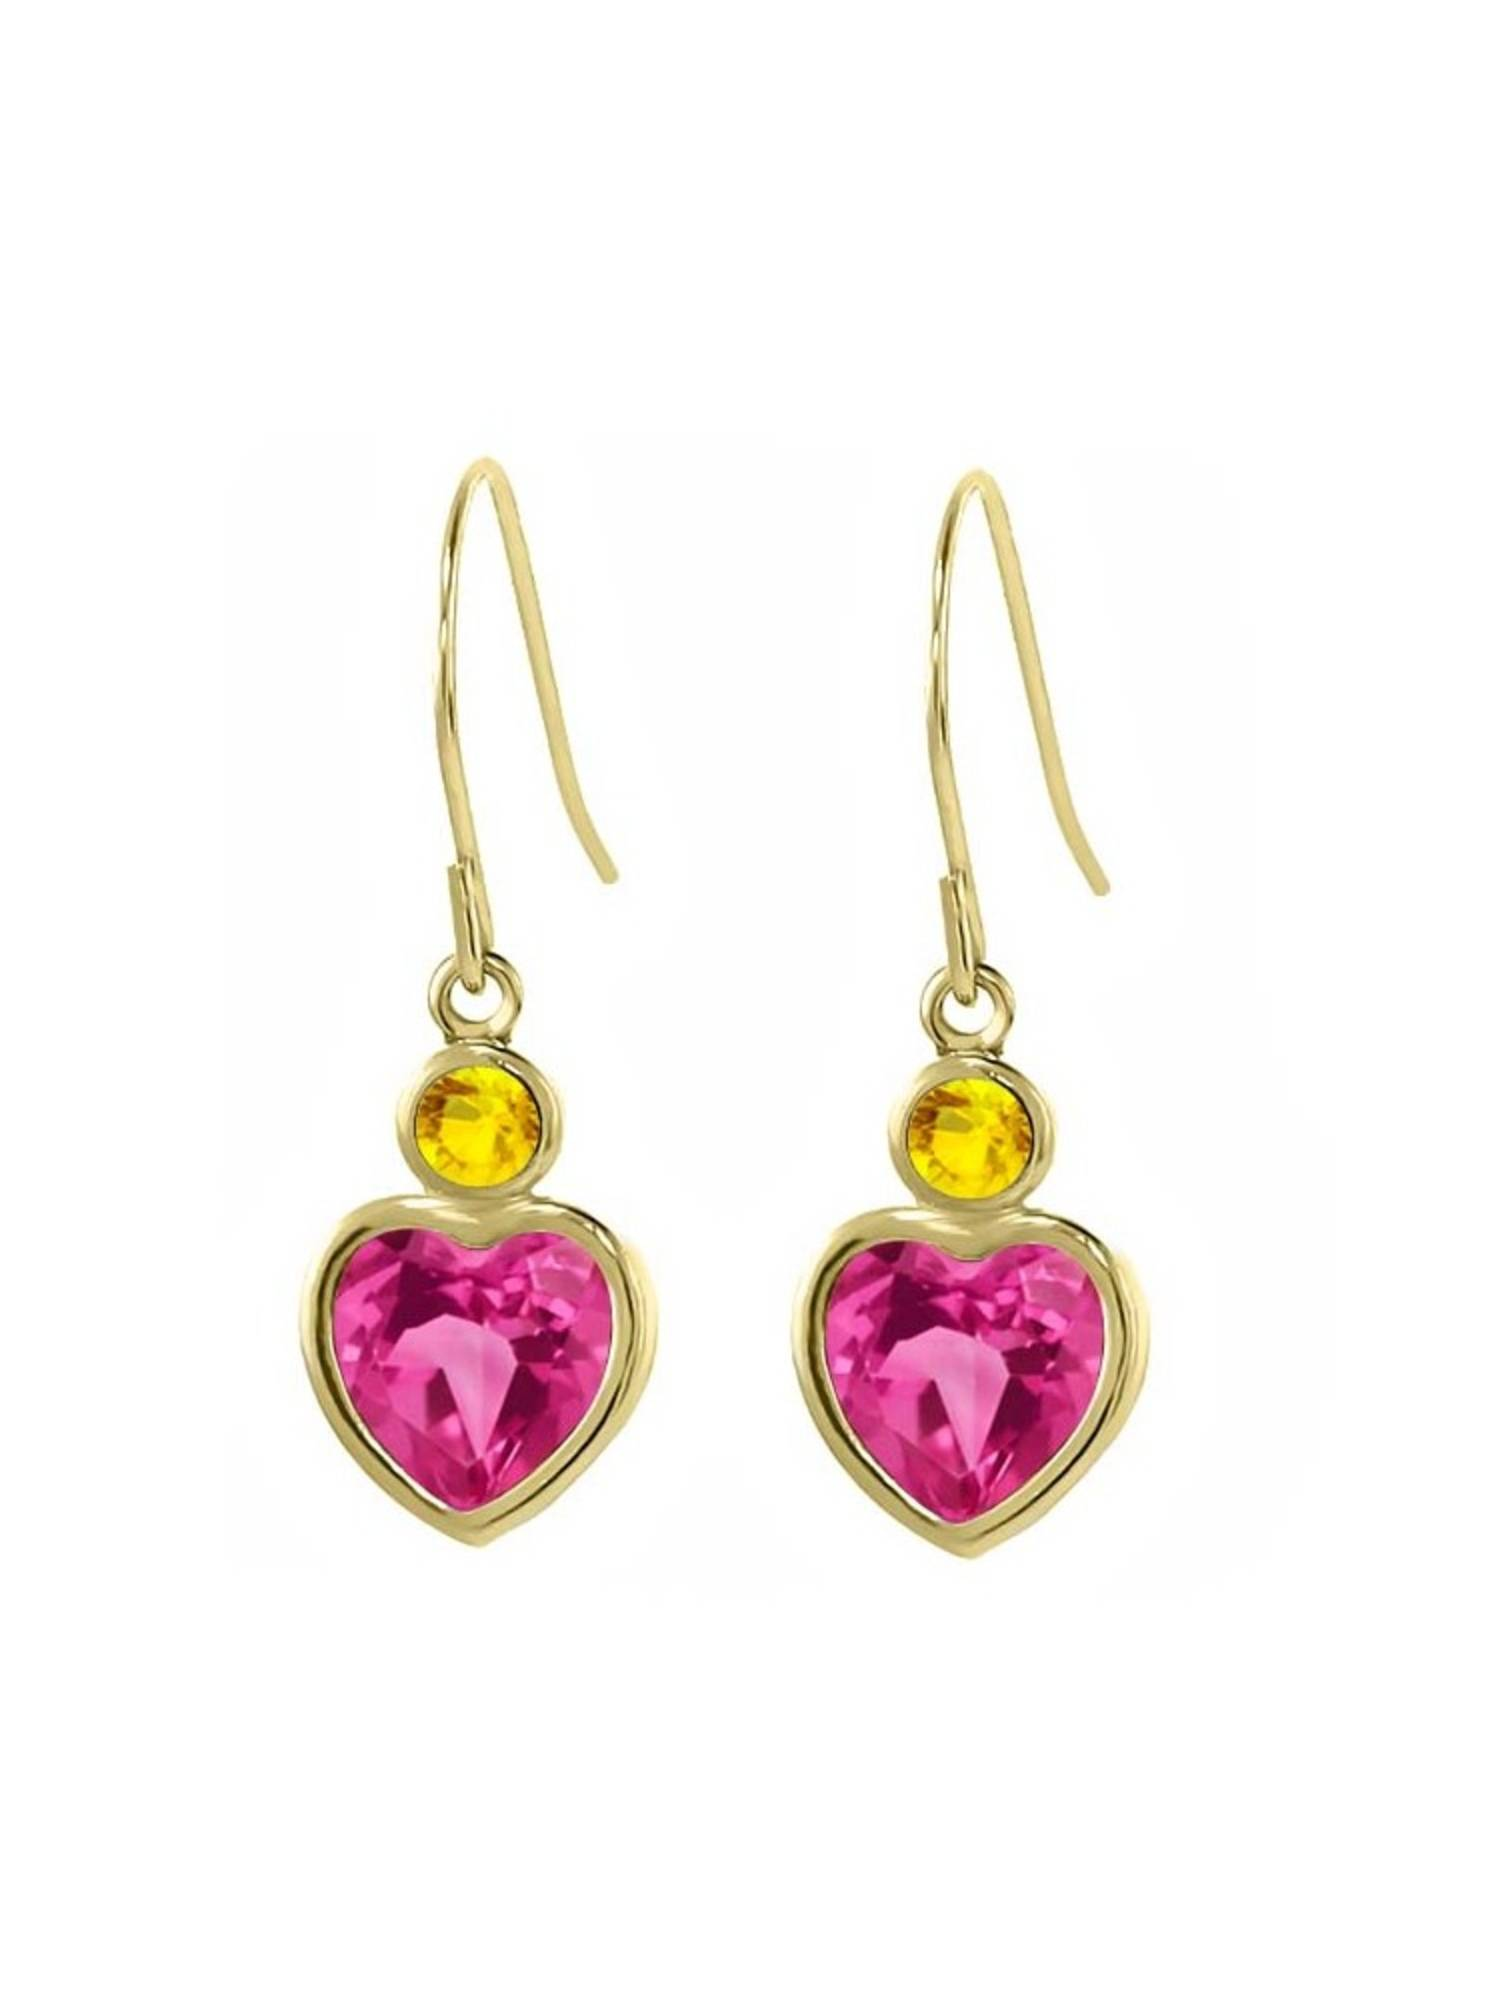 2.40 Ct Pink Created Sapphire Yellow Sapphire 14K Yellow Gold Earrings by